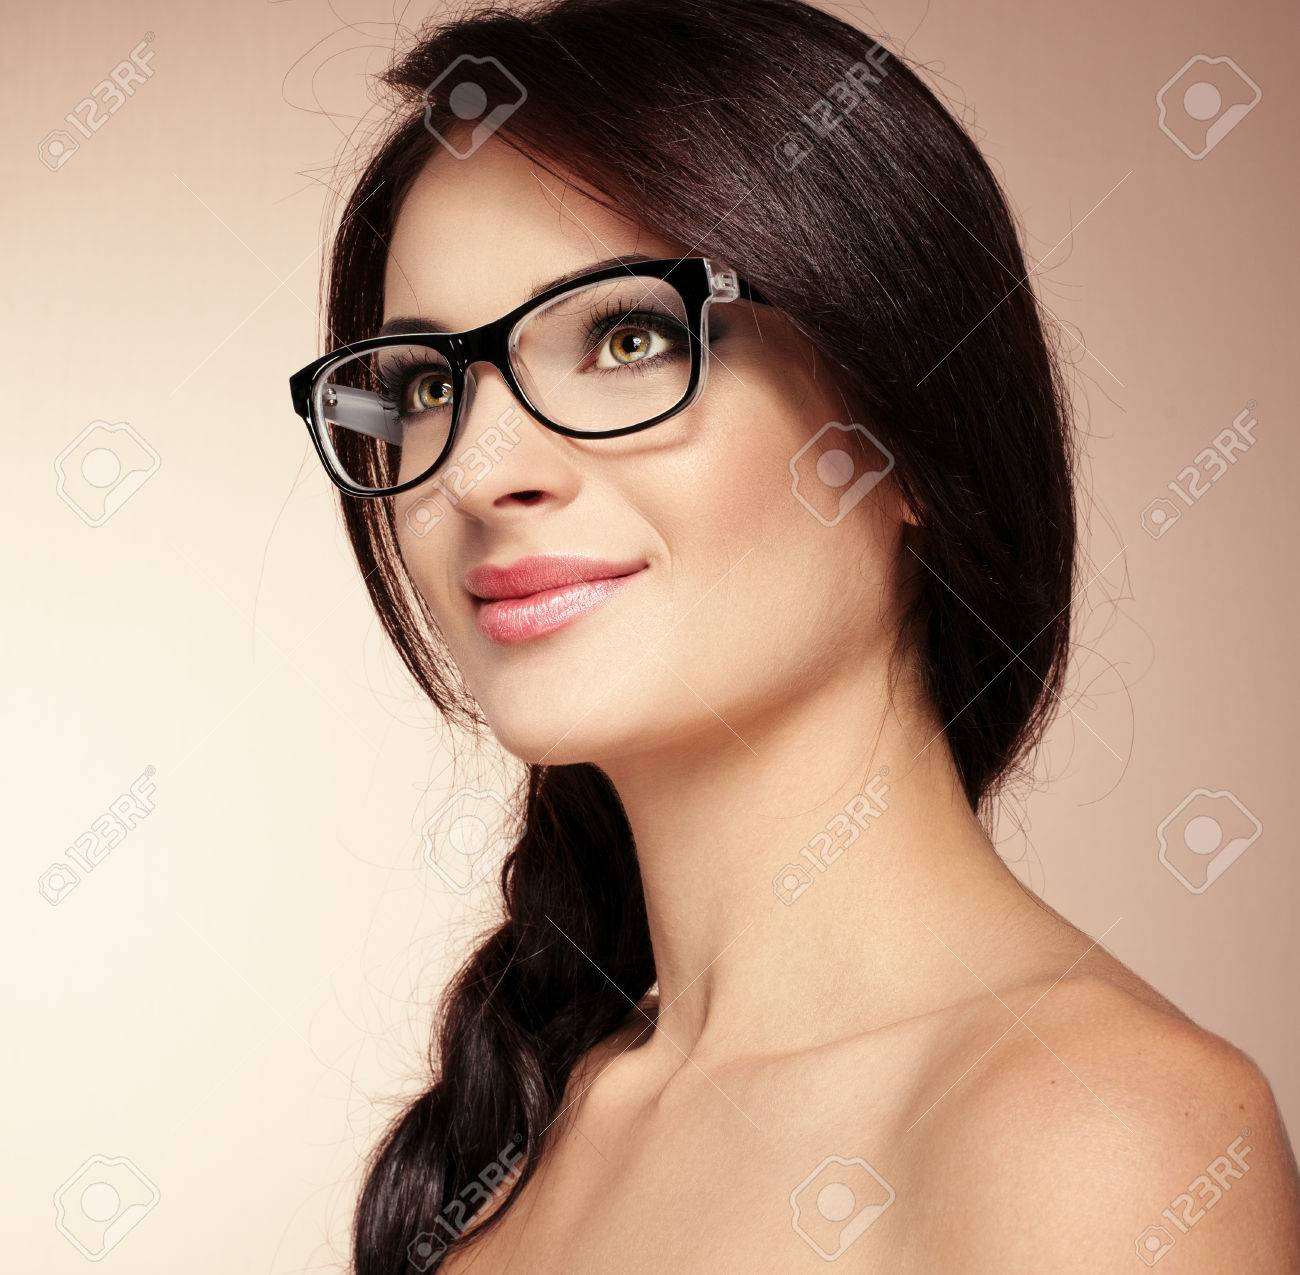 e8c5f5a9d0 Portrait of pretty brunette model in fashionable spectacles. Young beautiful  smart lady wearing stylish eyeglasses